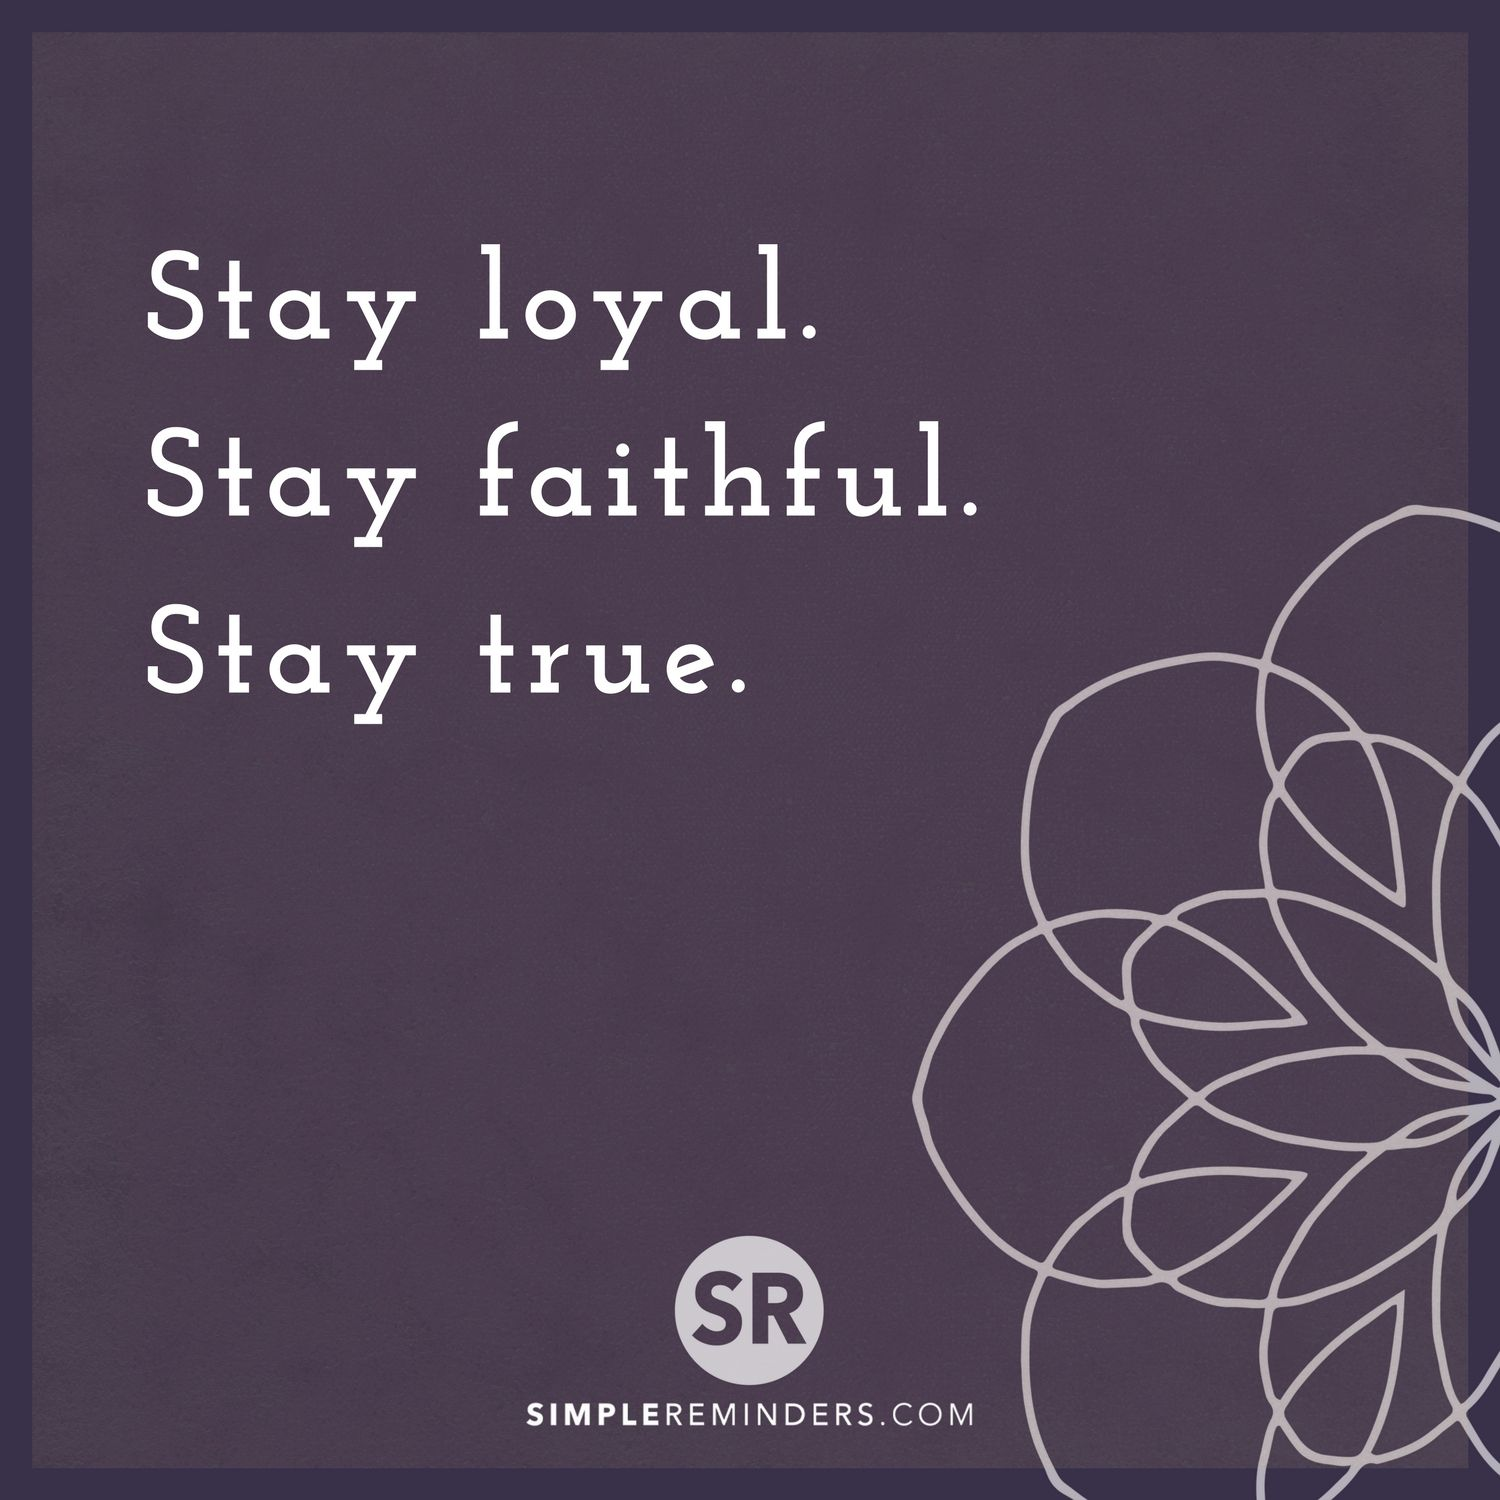 Stay Loyal Stay Faithful Stay True Simplereminders Quotes Quotestoliveby Loyalty Truth Faith Inspiration St Faith True Quotes About Life True Quotes